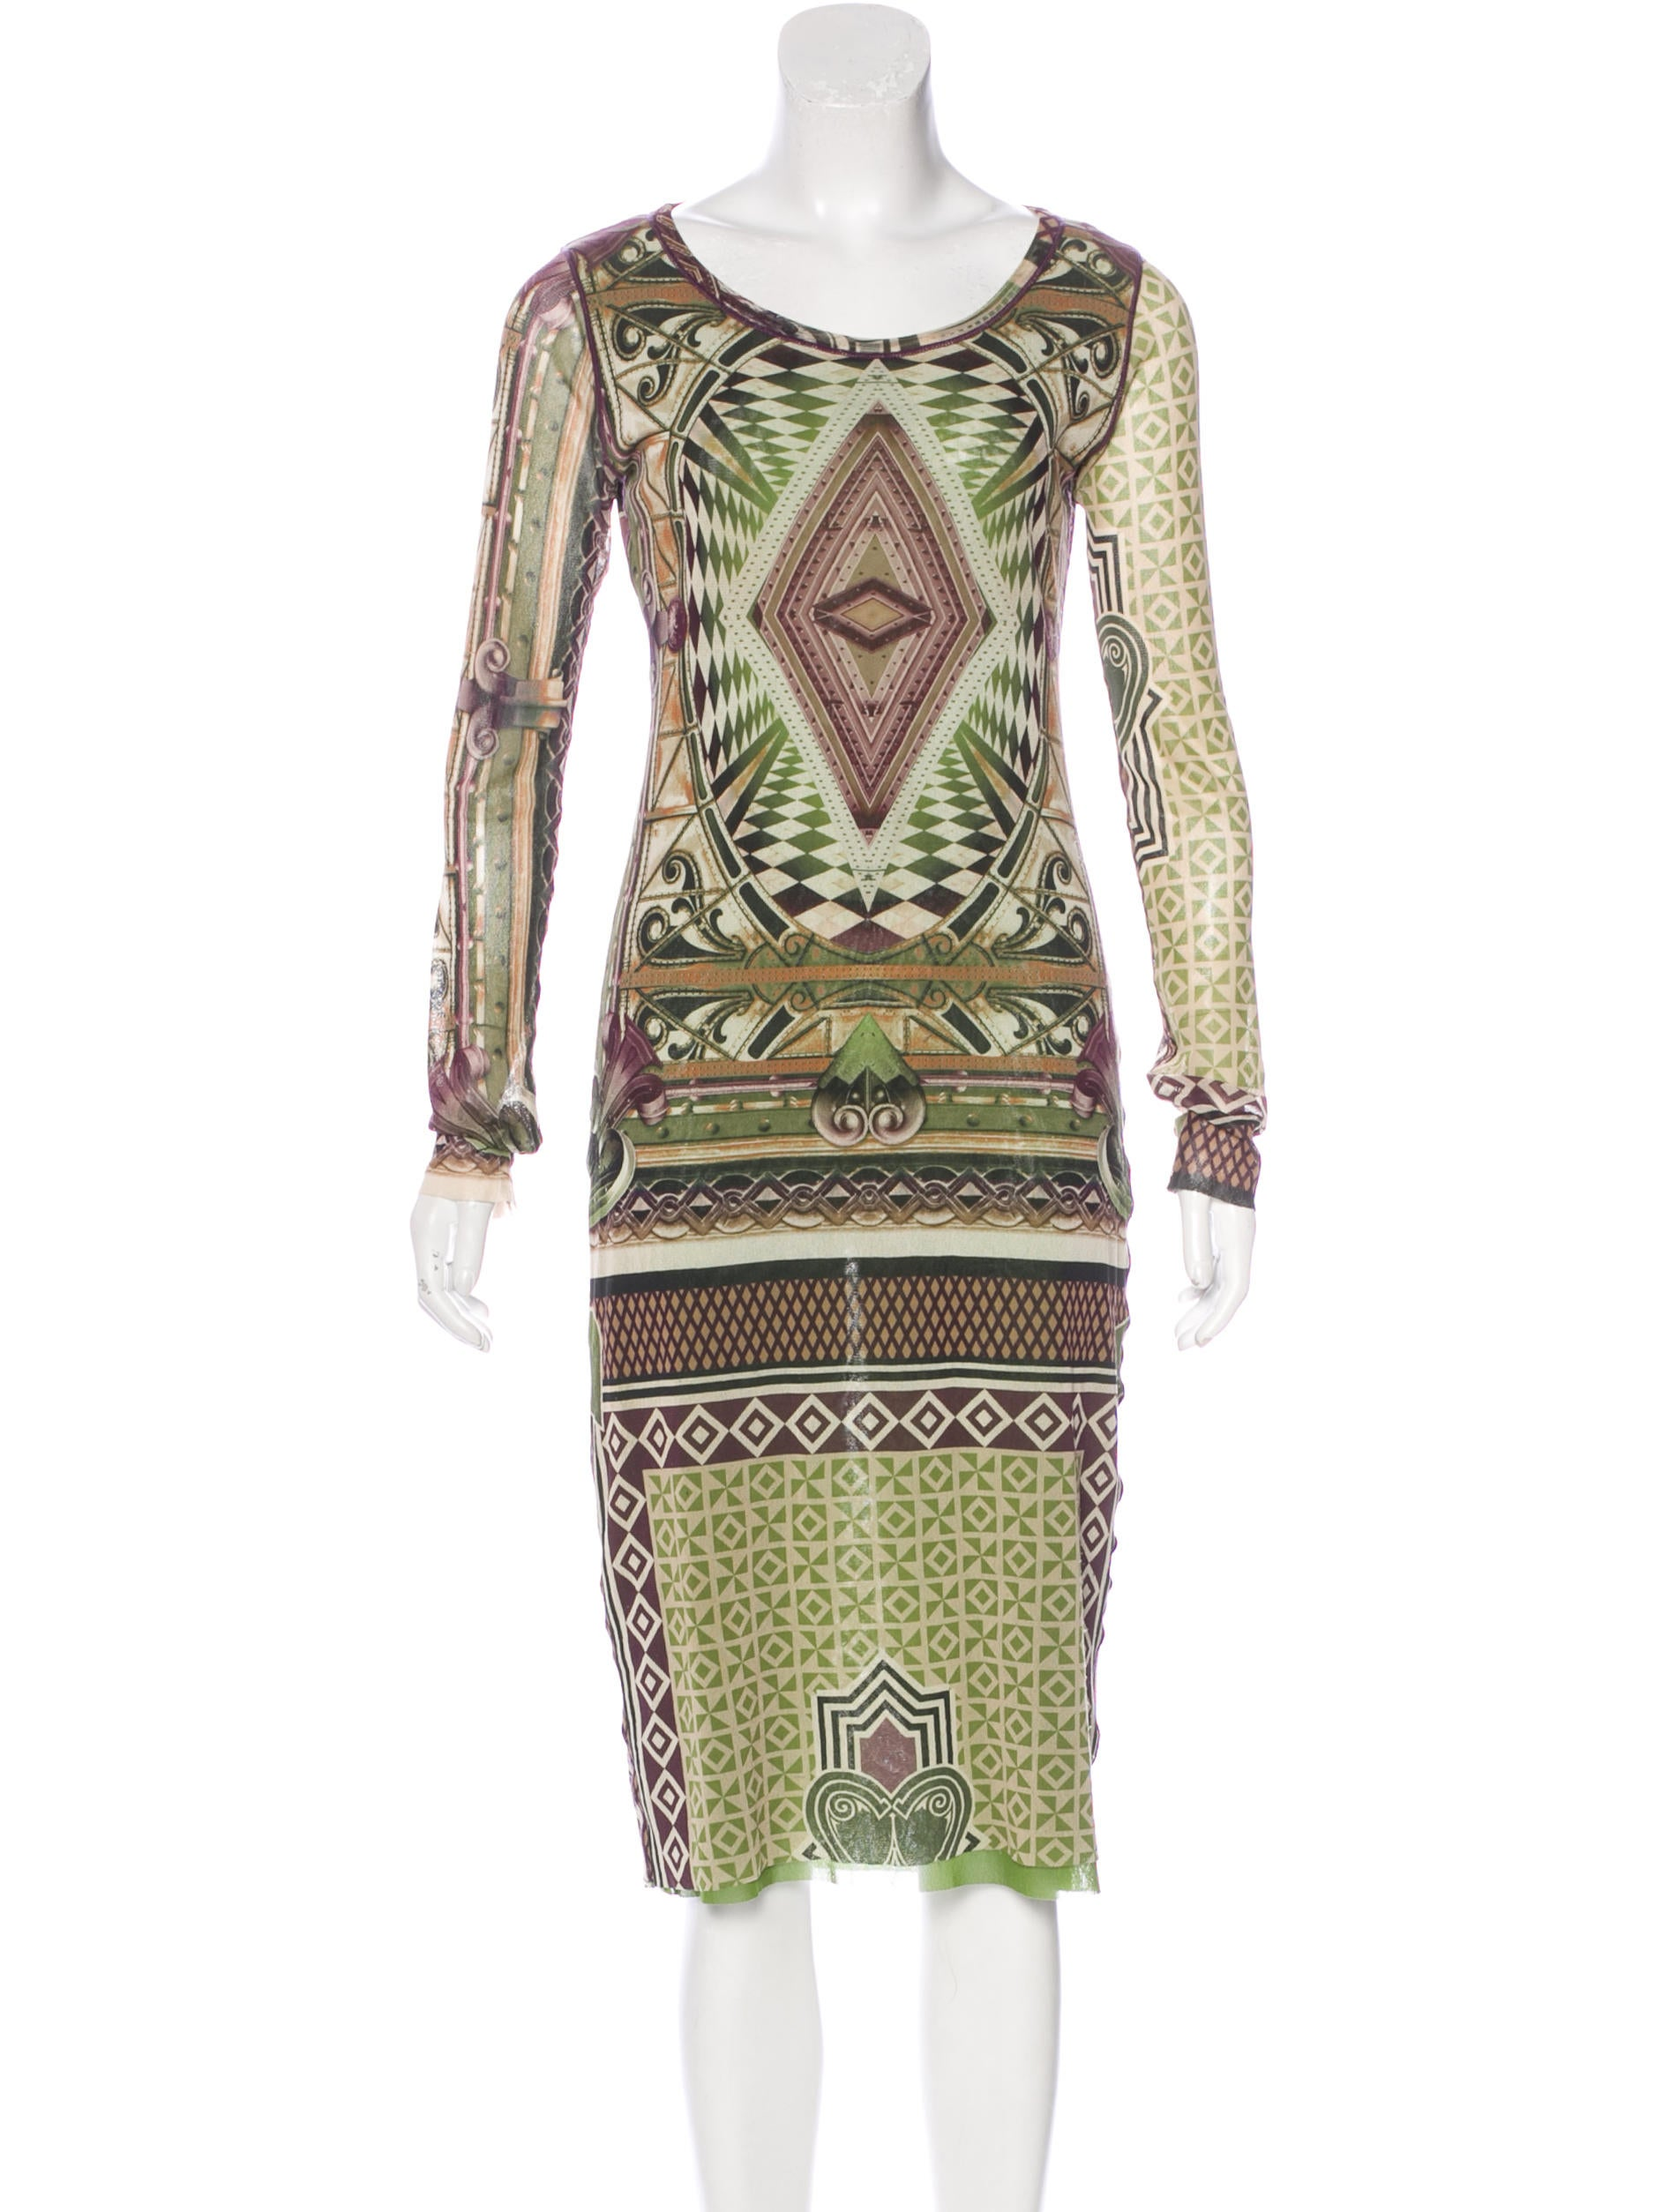 Jean paul gaultier printed long sleeve dress clothing for Jean paul gaultier clothing